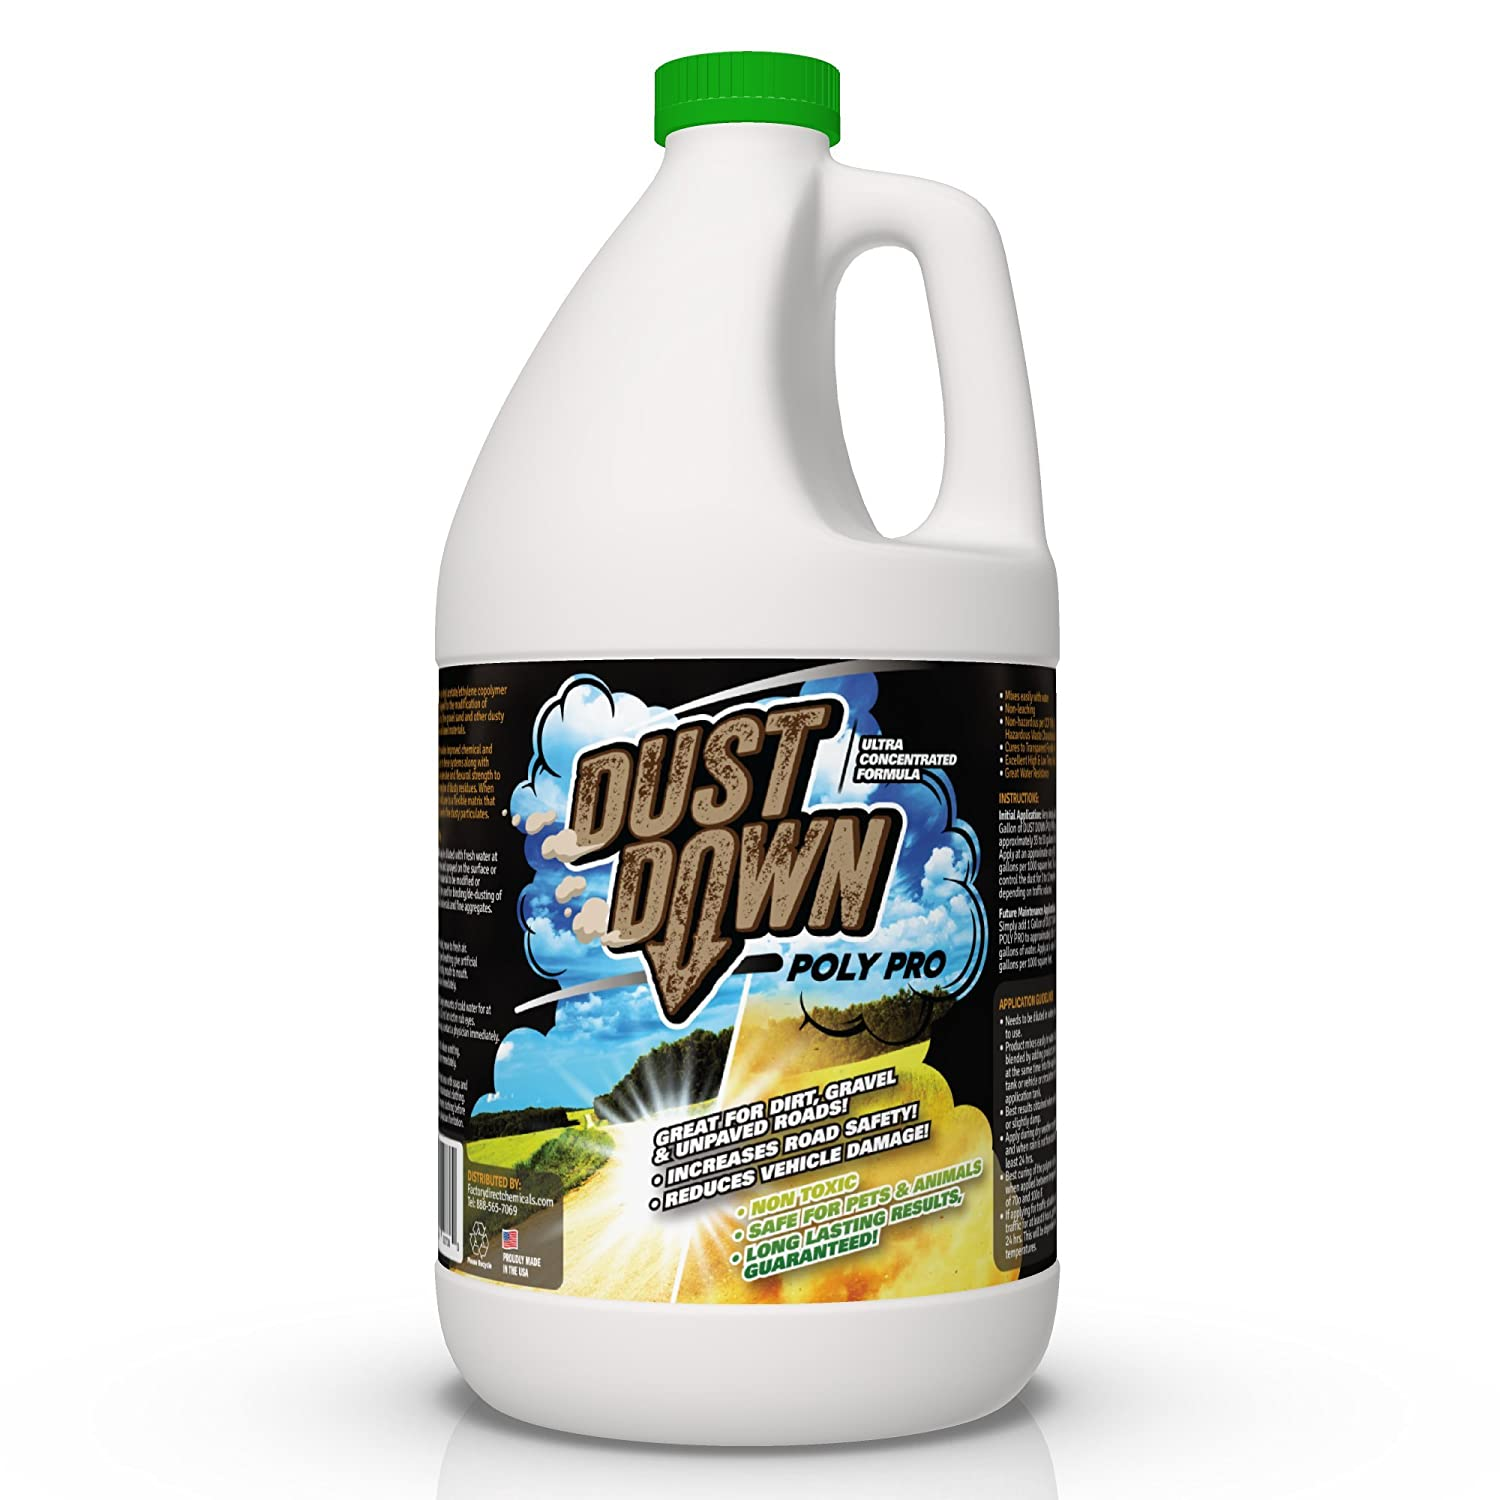 Green Gobbler Dust Down Poly PRO Polymer Road Dust Control | Dust Reducer for Driveway's, Roads & Construction Sites (1 Gallon)